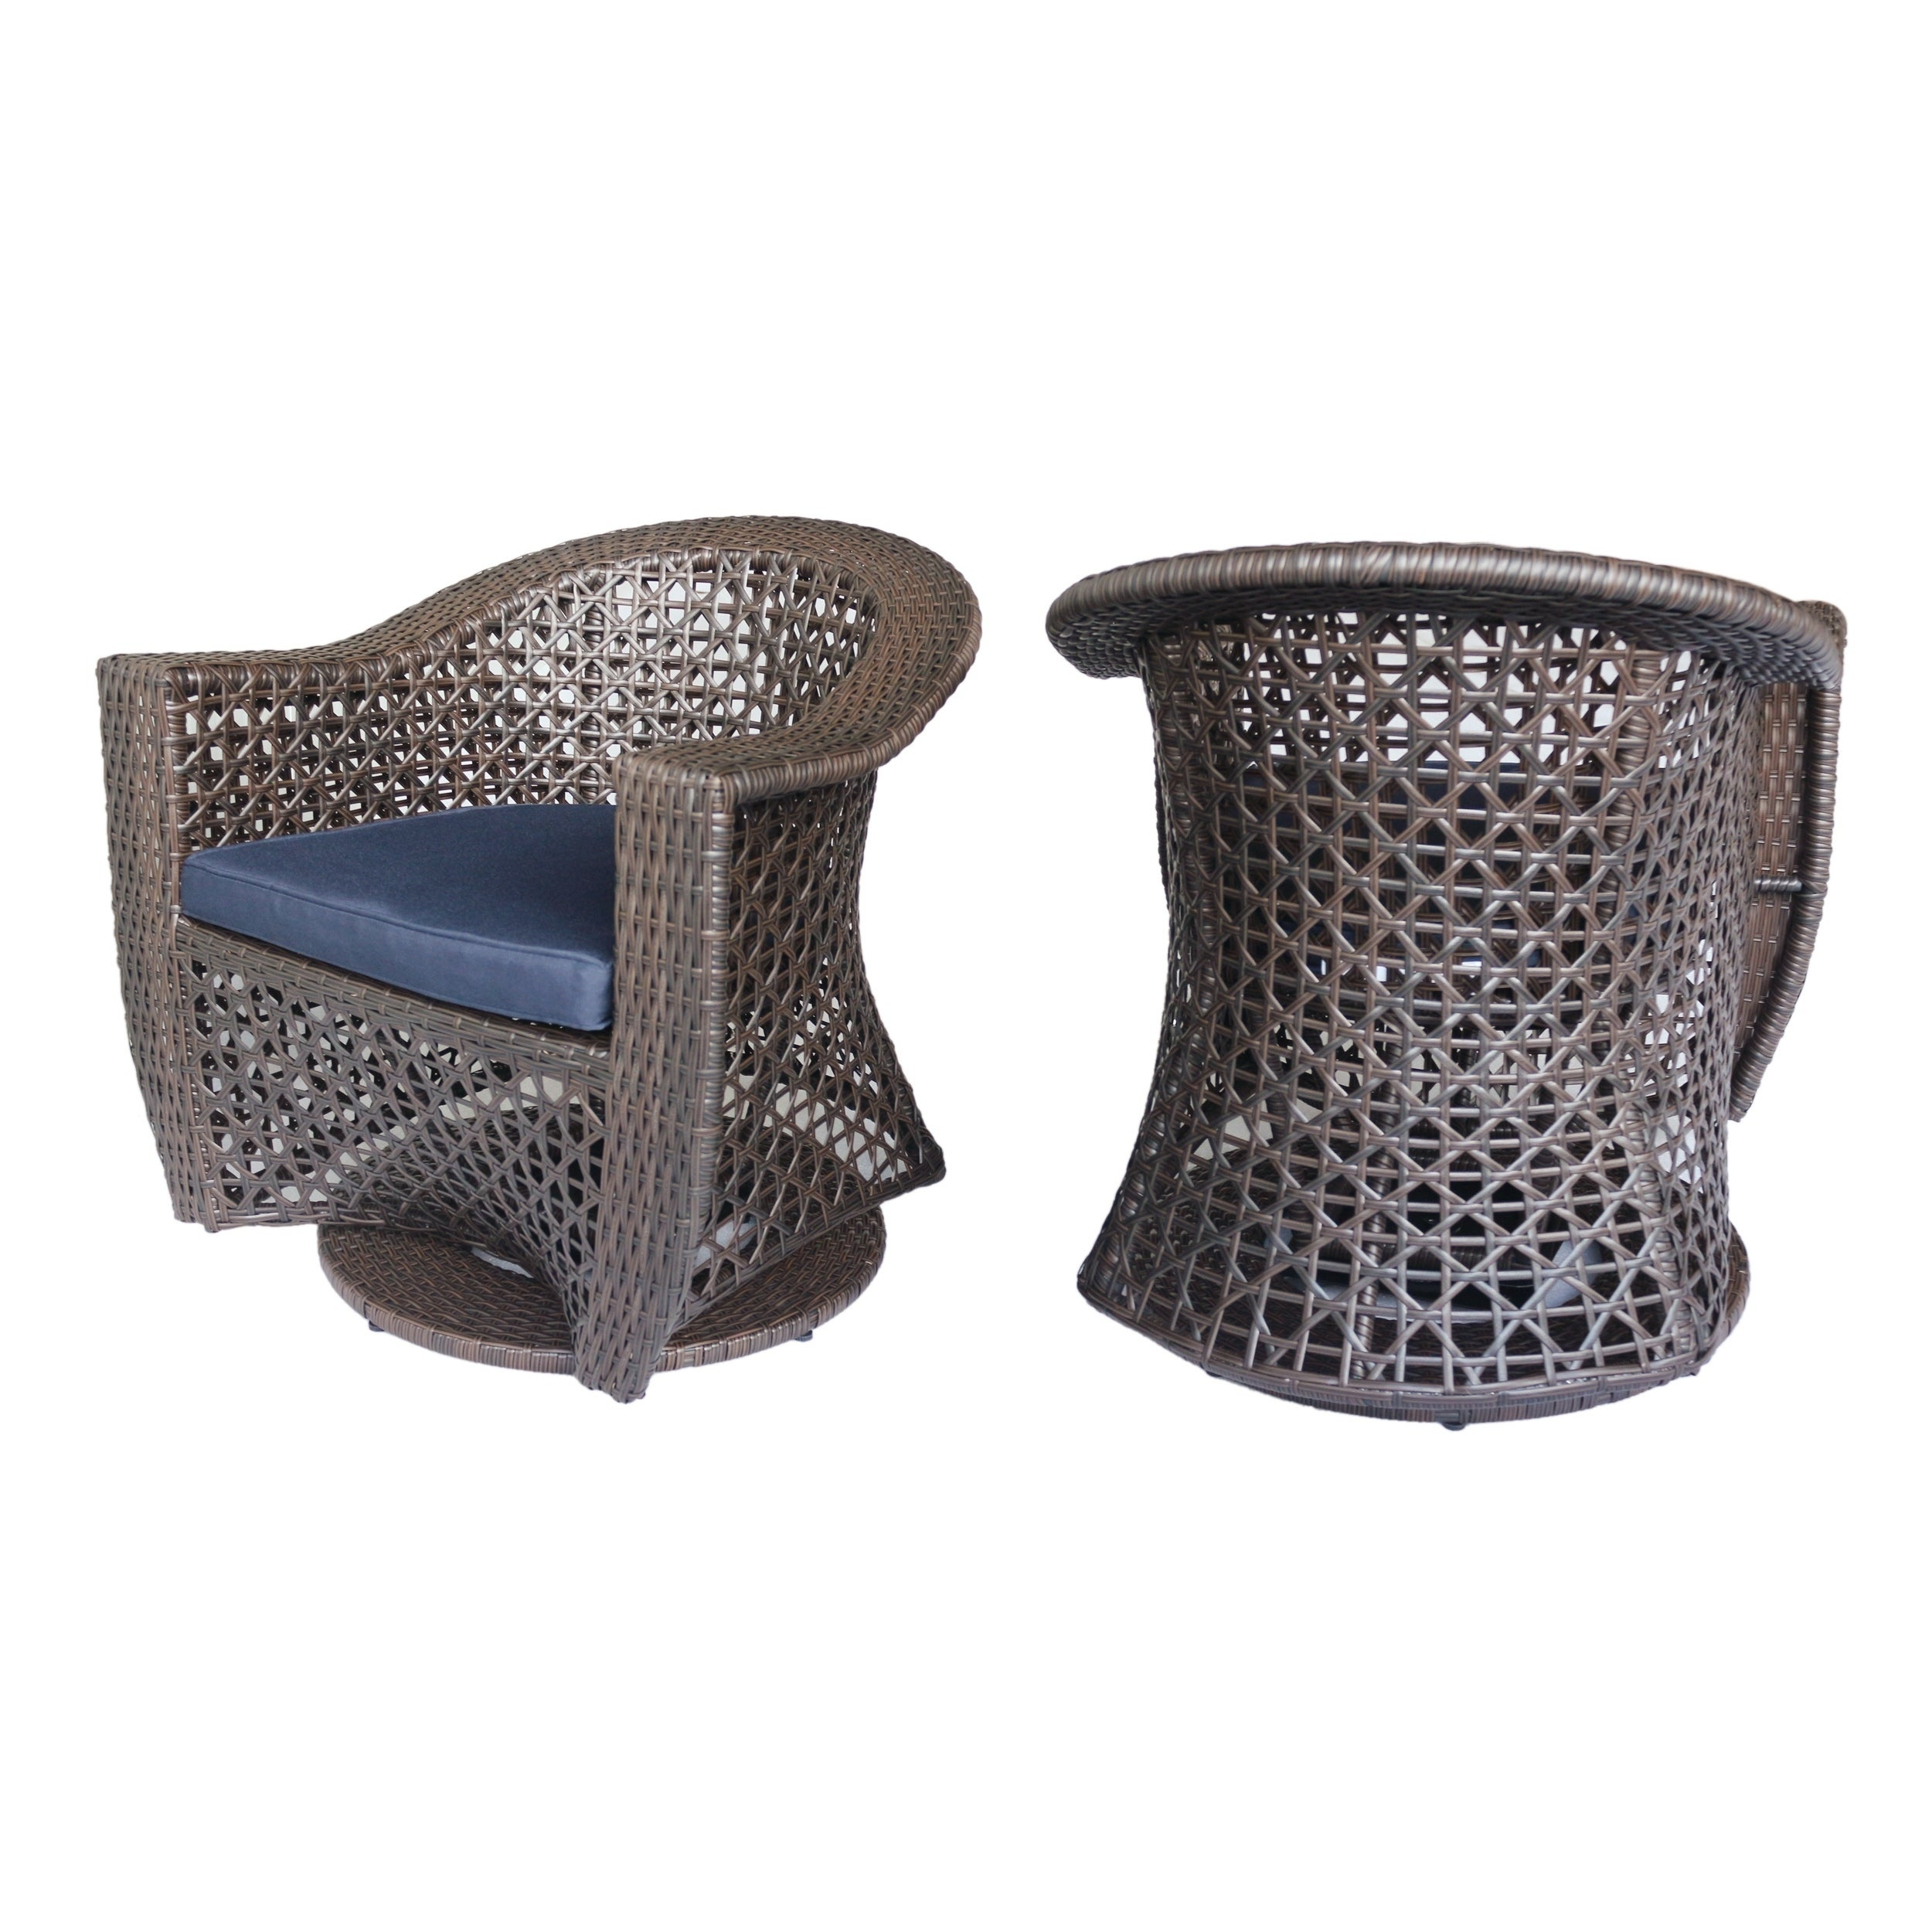 Strange Details About Big Sur Outdoor Wicker Swivel Chair With Cushions Set Of 2 Multi Brown Navy Cjindustries Chair Design For Home Cjindustriesco